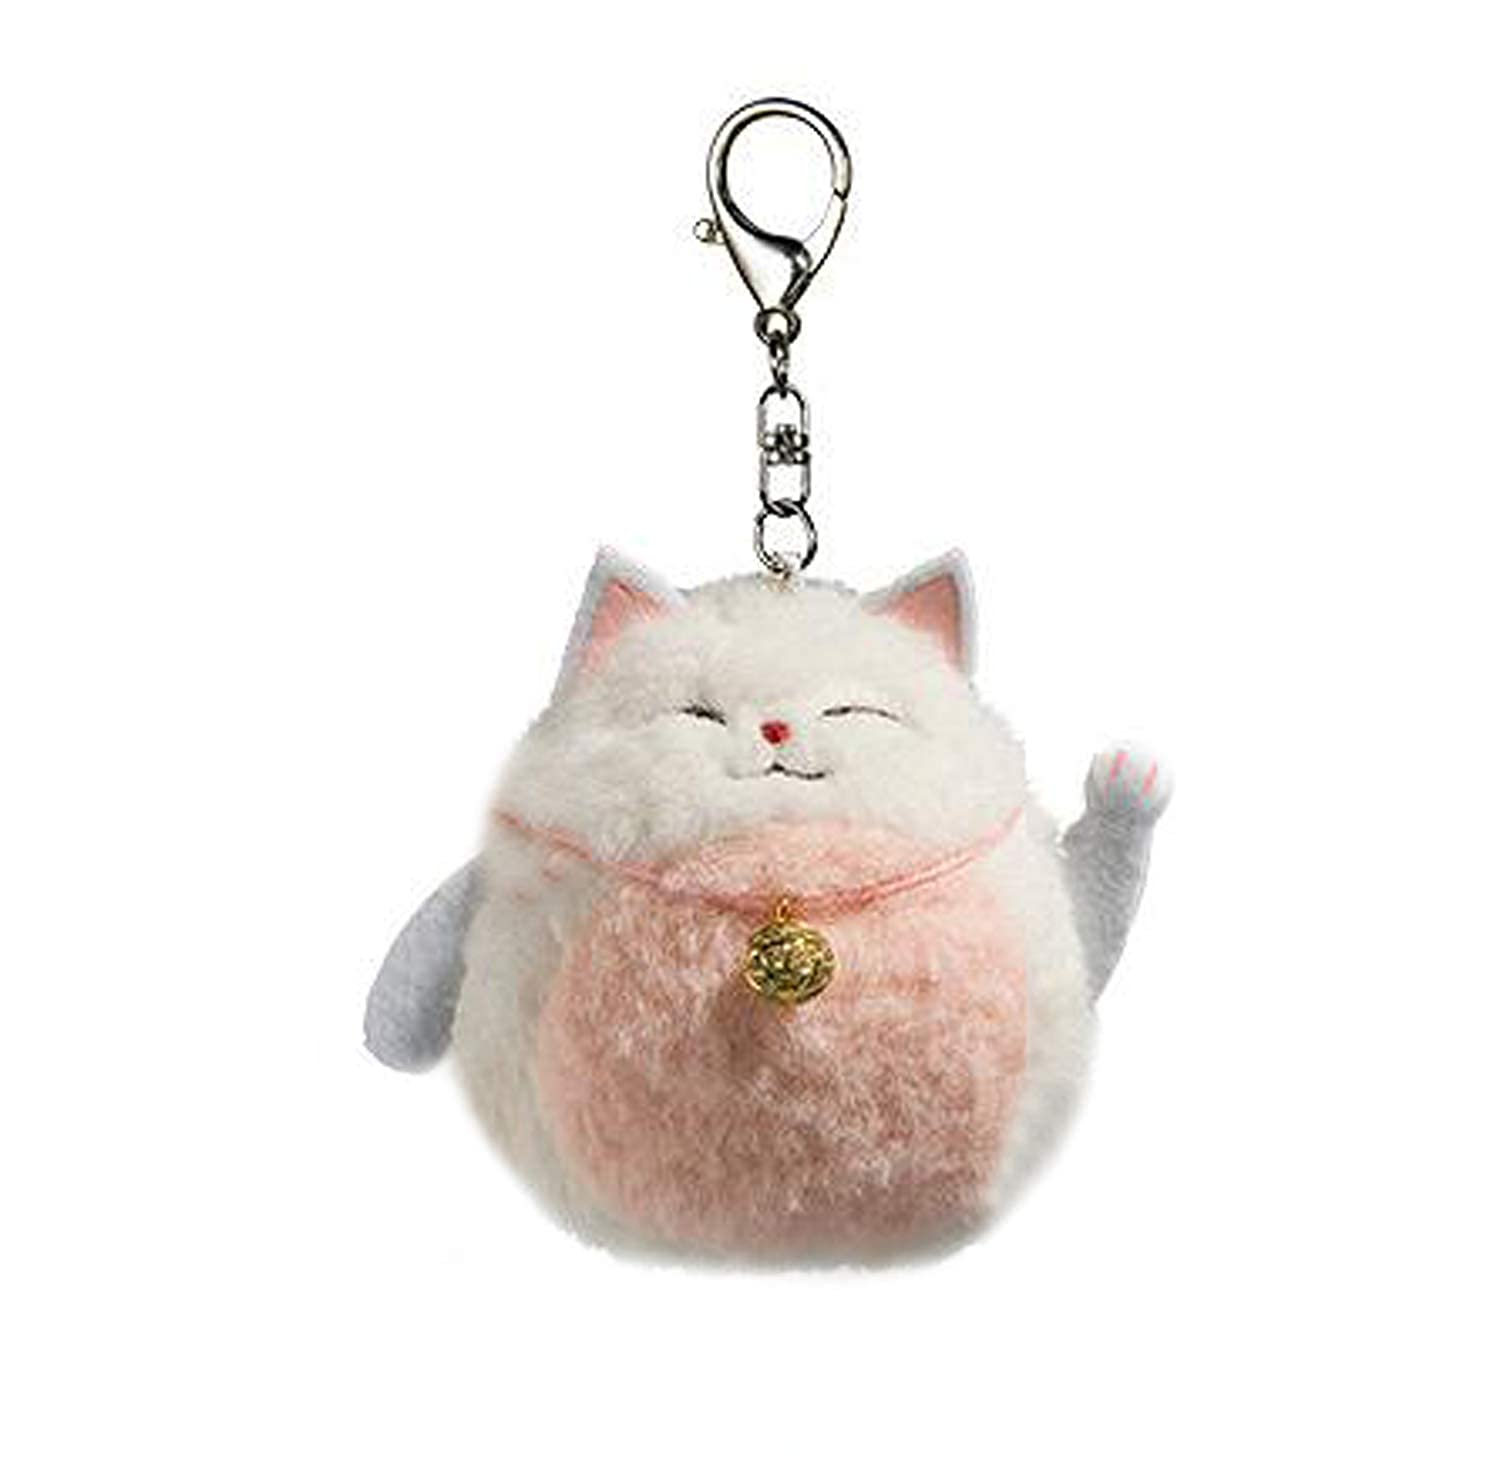 Plush Cat Keychain Stuffed Animal Toys Ornaments Pendant Lucky Kitty Pink 4 Smilesky